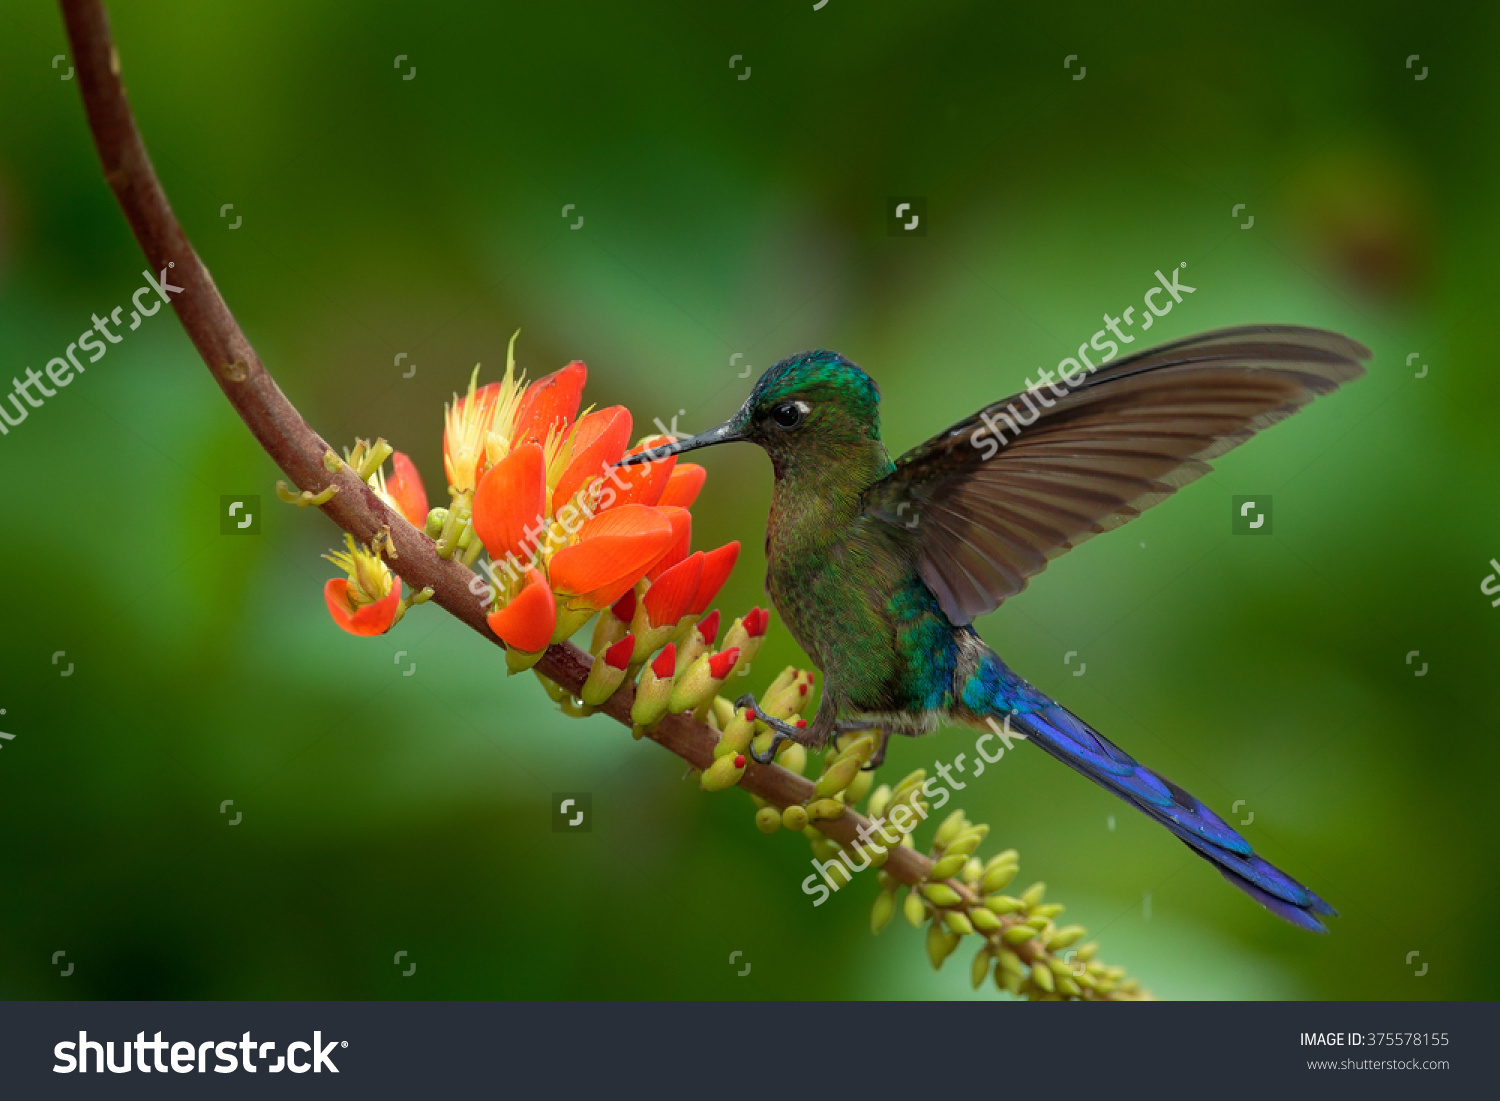 Long-tailed Sylph clipart #13, Download drawings